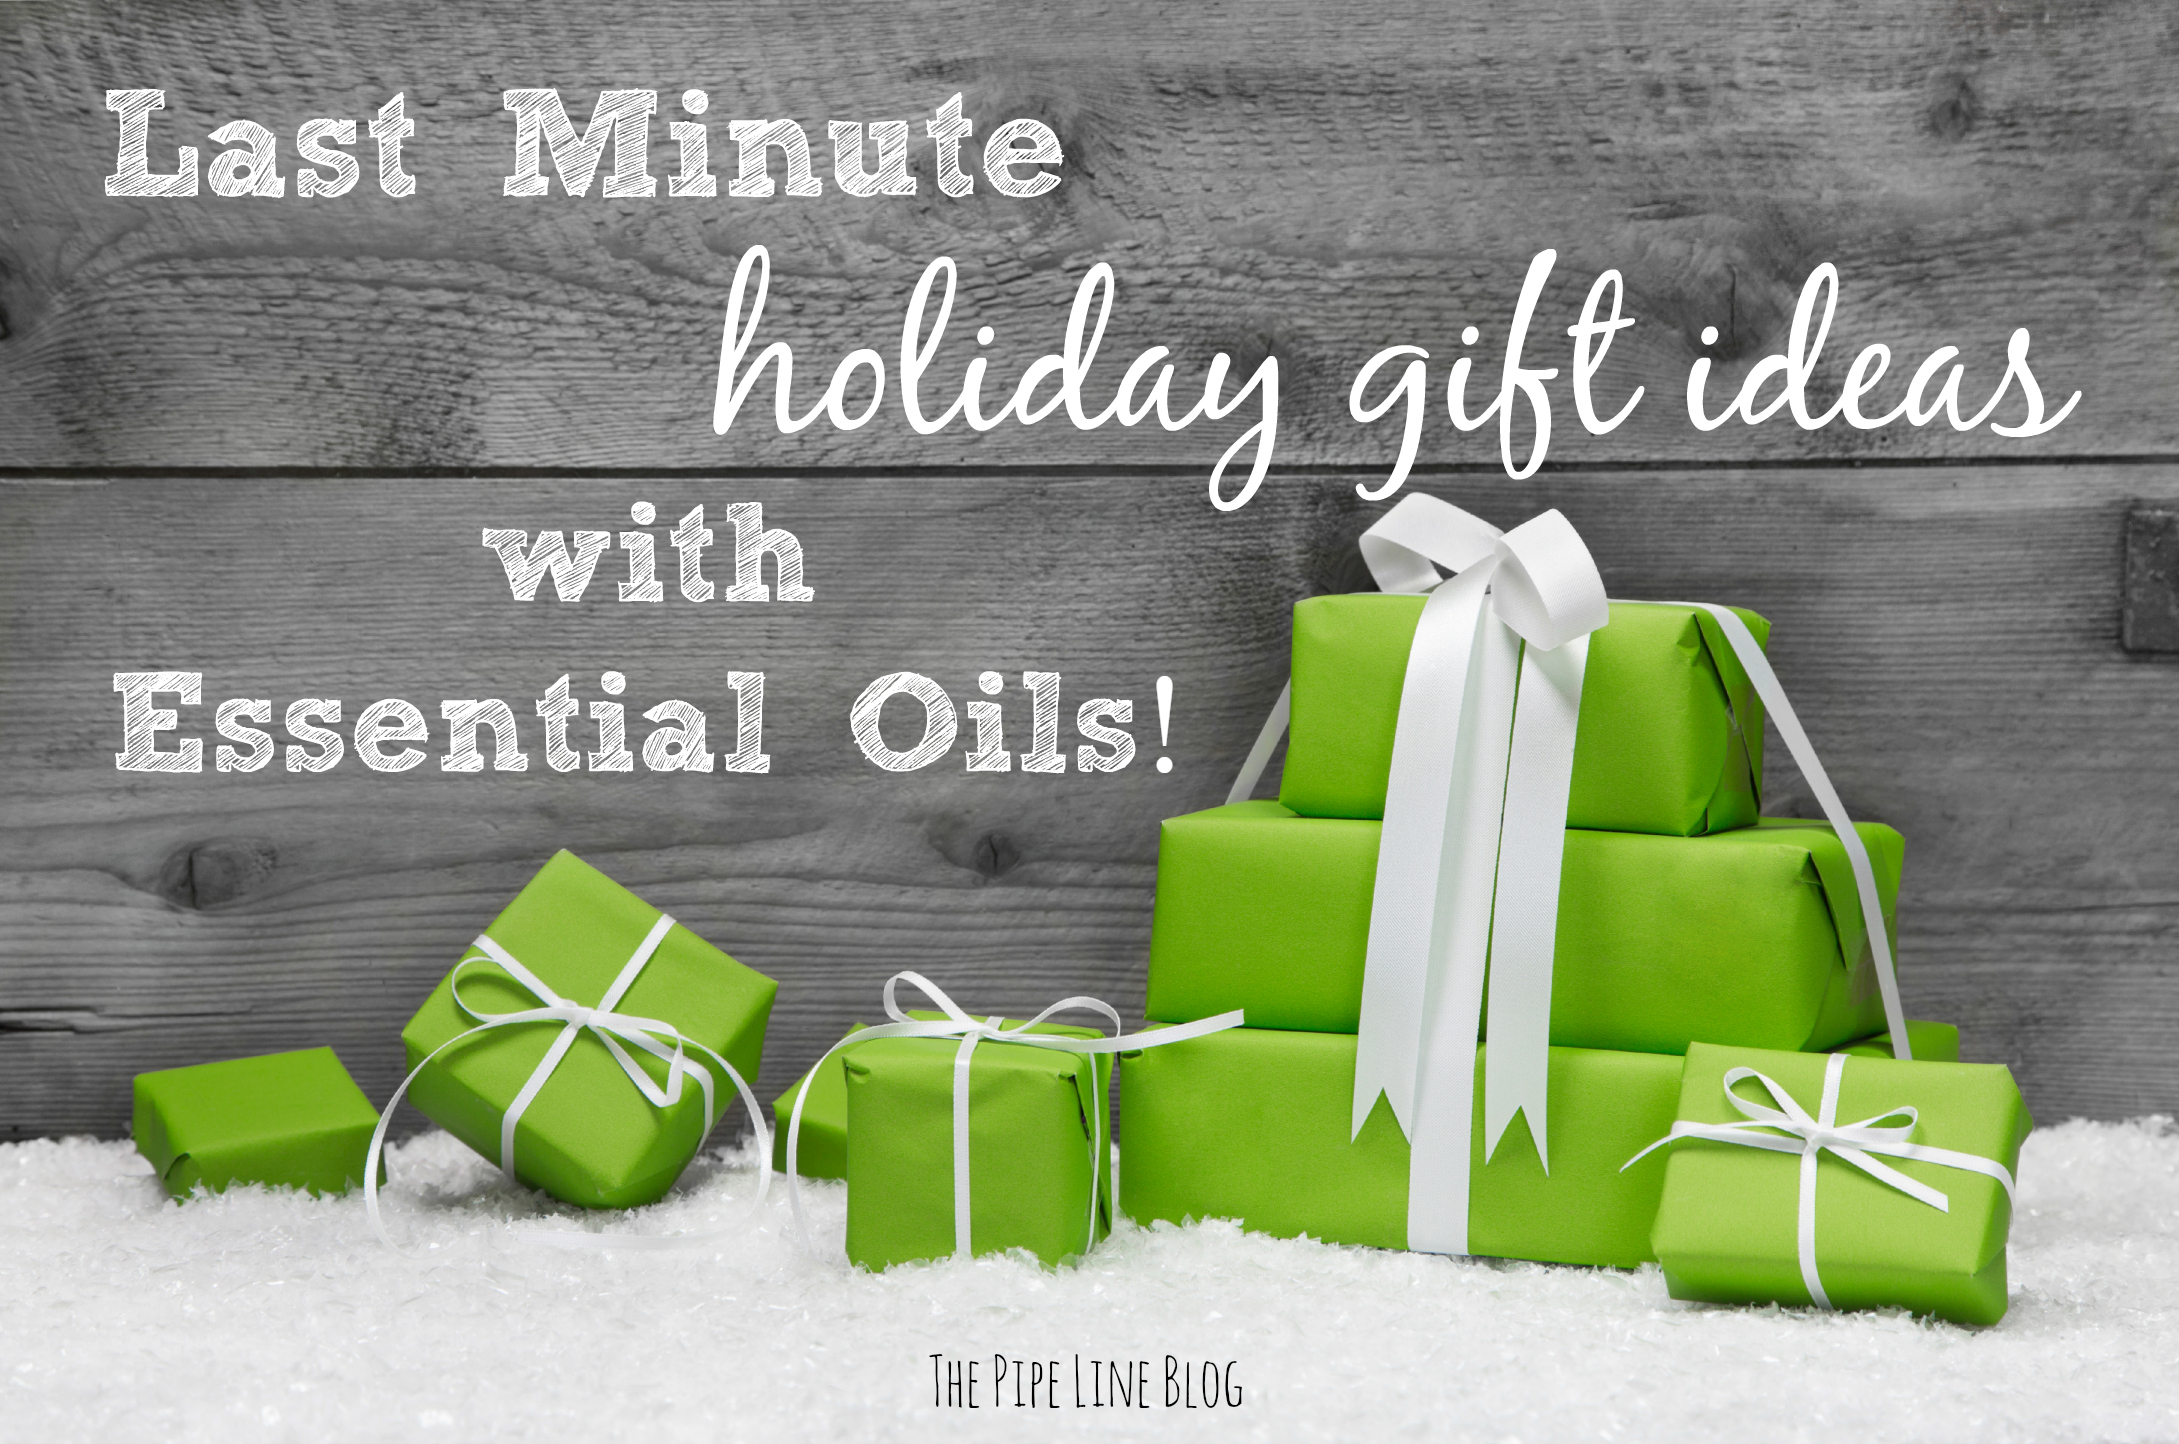 Piping Rock - The Pipe Line - Last Minute Holiday Gift Ideas with Essential Oils!